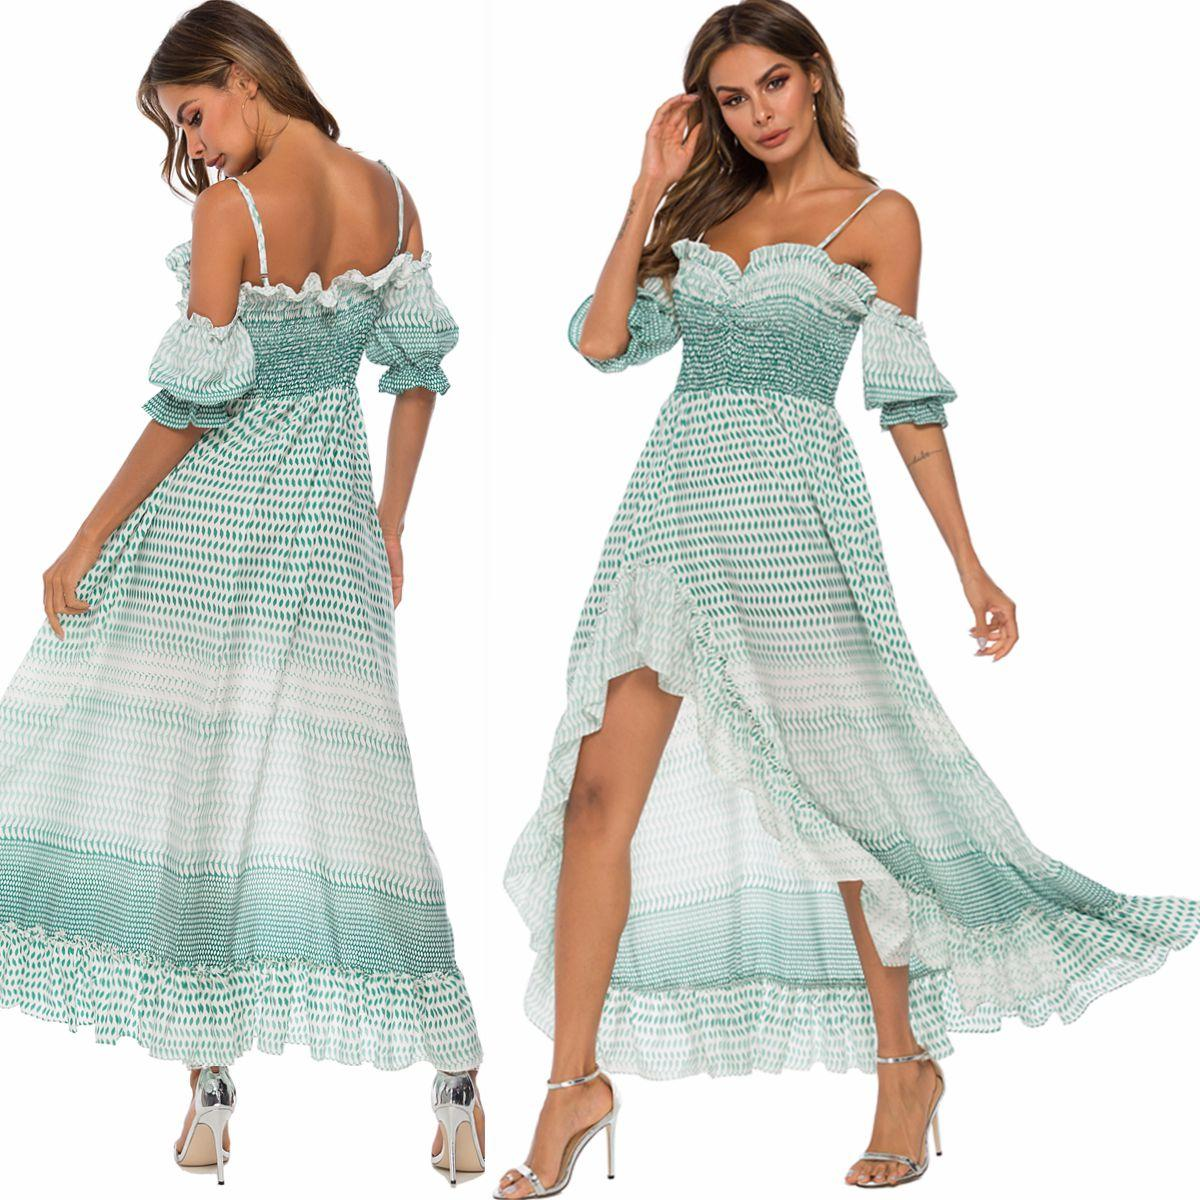 Women V Neck Cold Shoulder Mini Dresses Ladies Summer Holiday Party Ruffle Dress